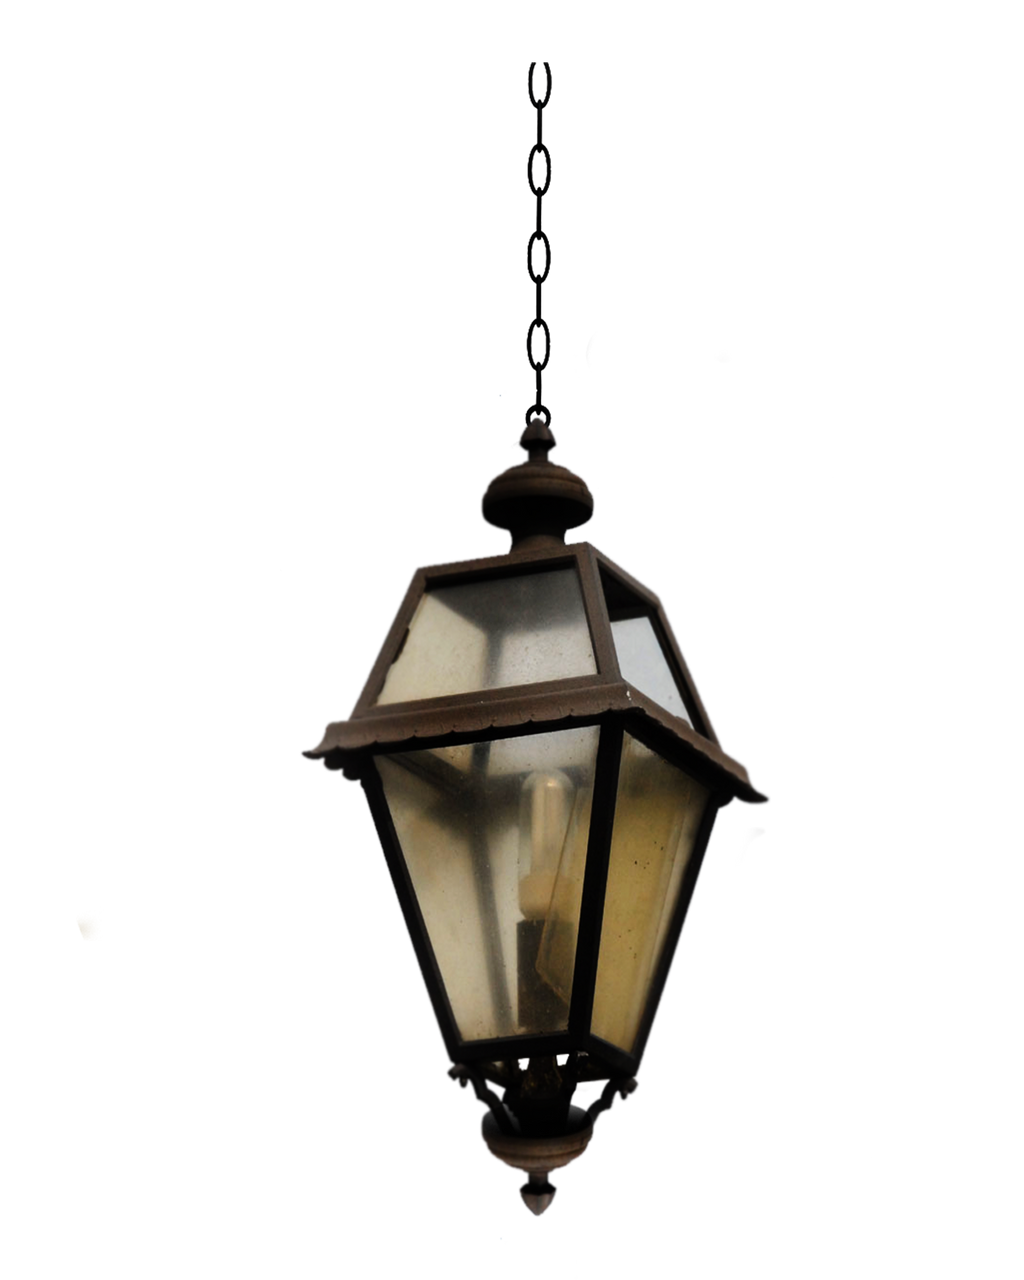 Hanging Lamp Png by Moonglowlilly on DeviantArt